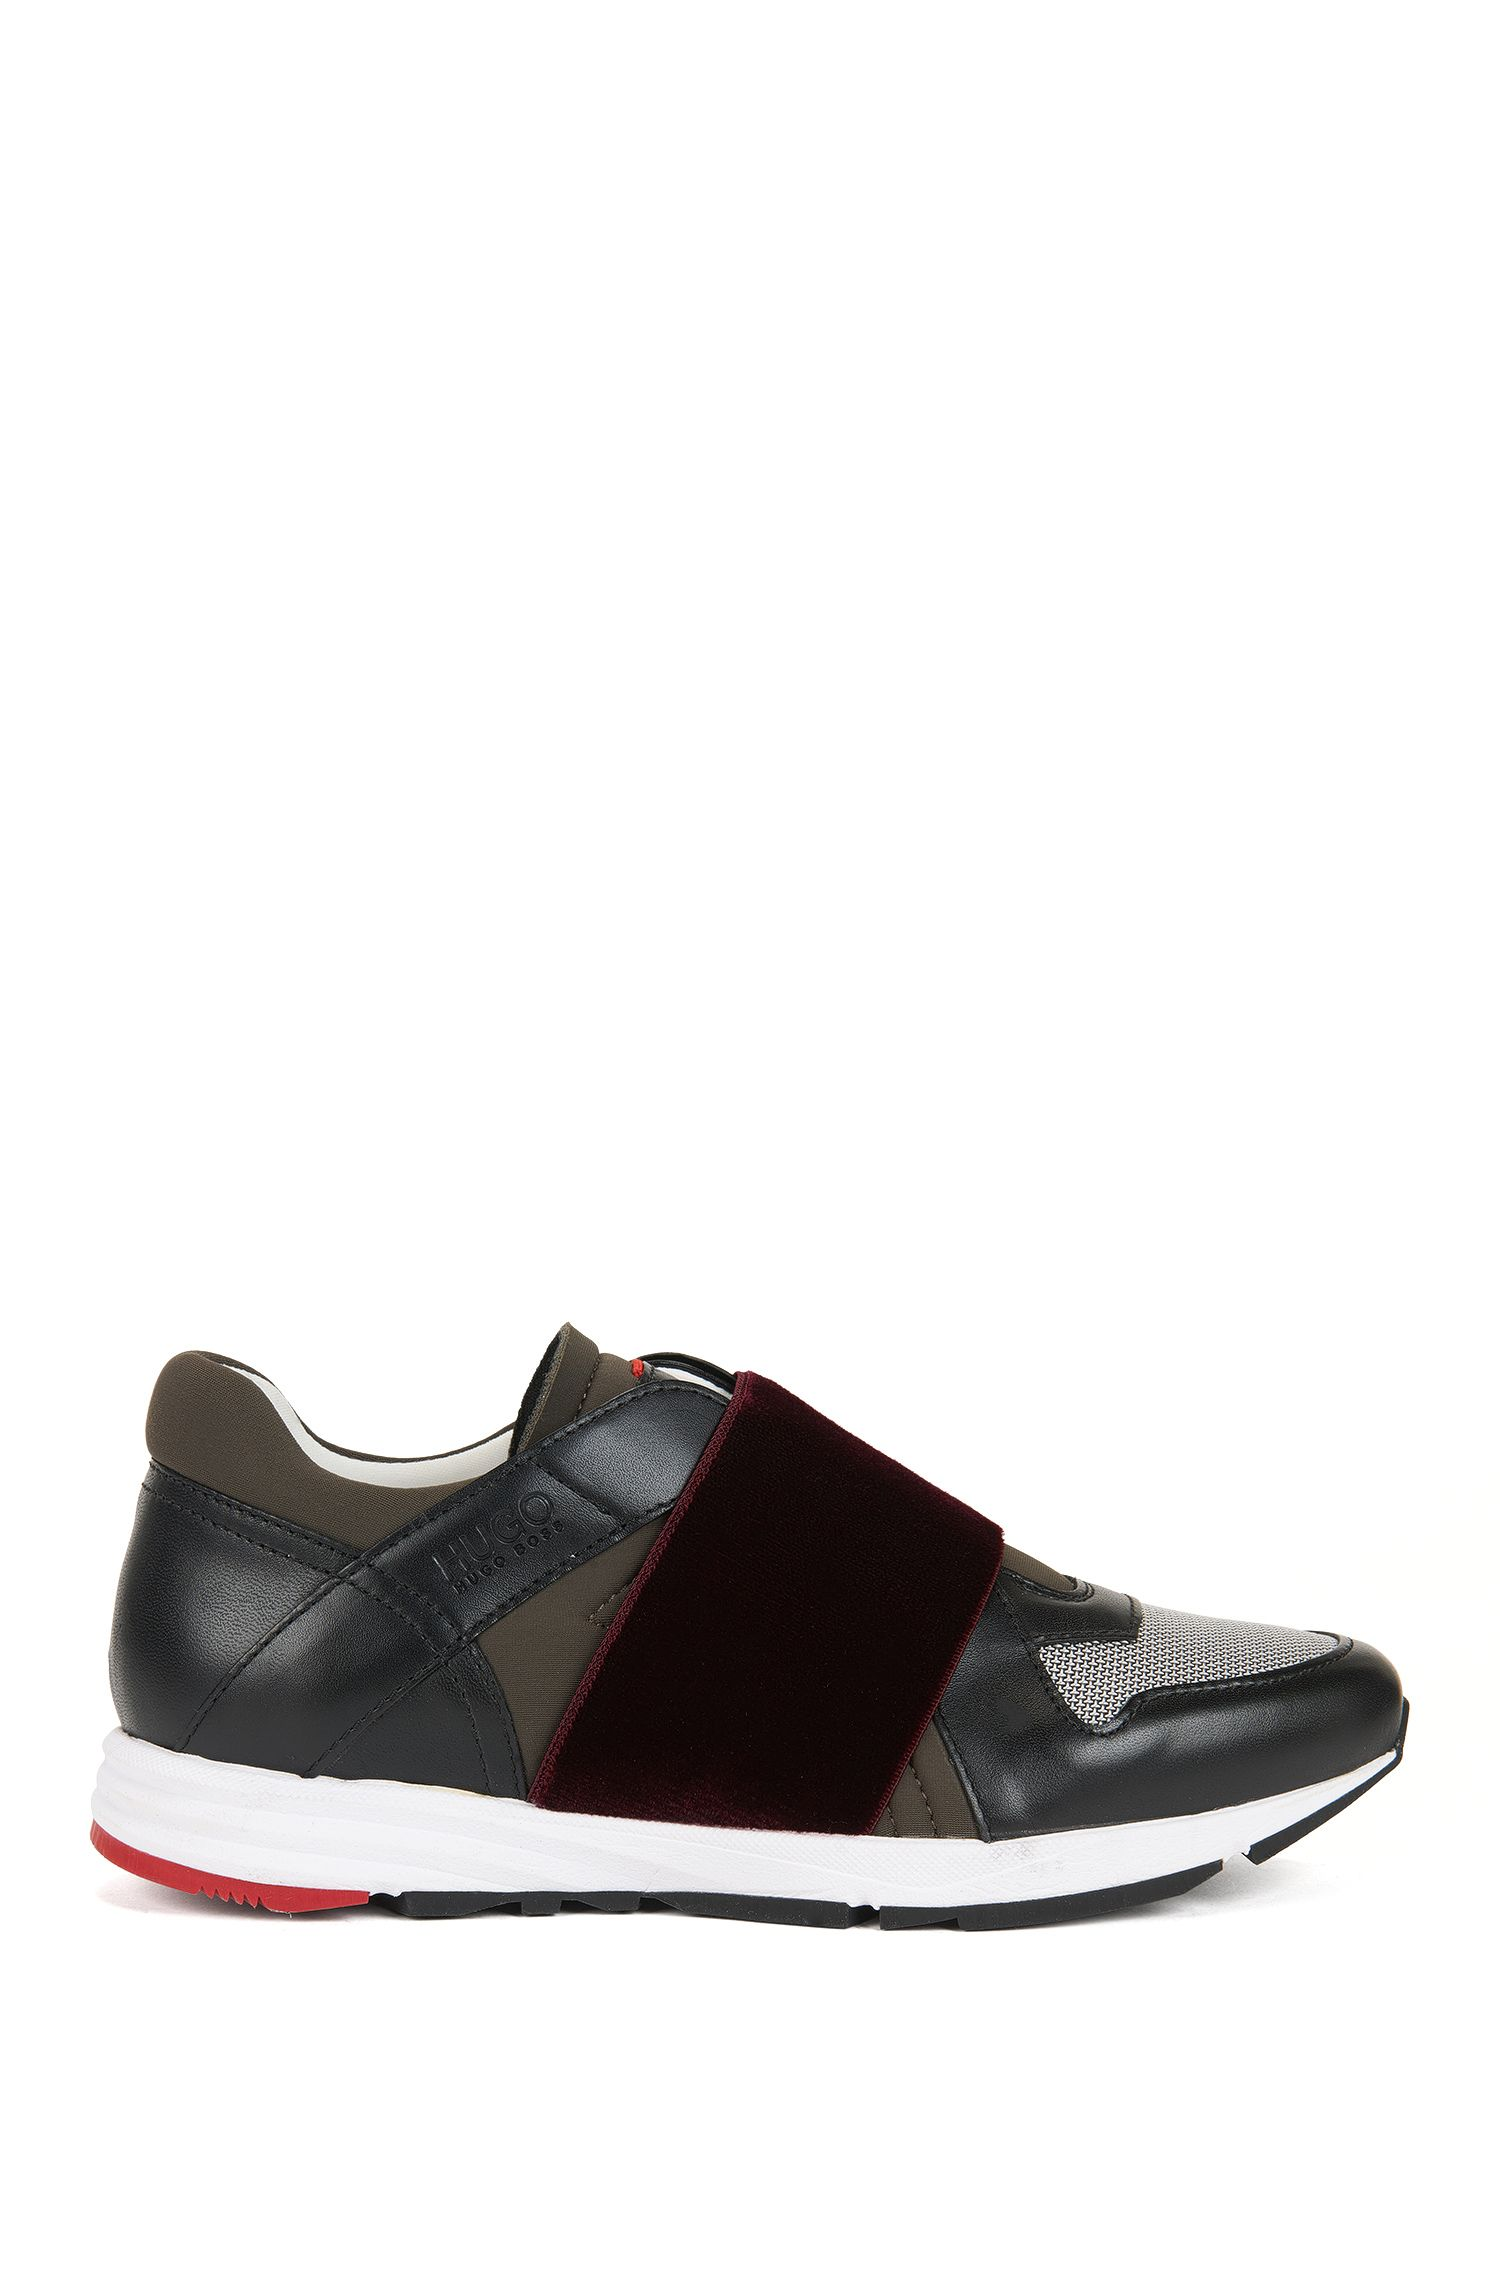 Low-top leather trainers with elasticated straps